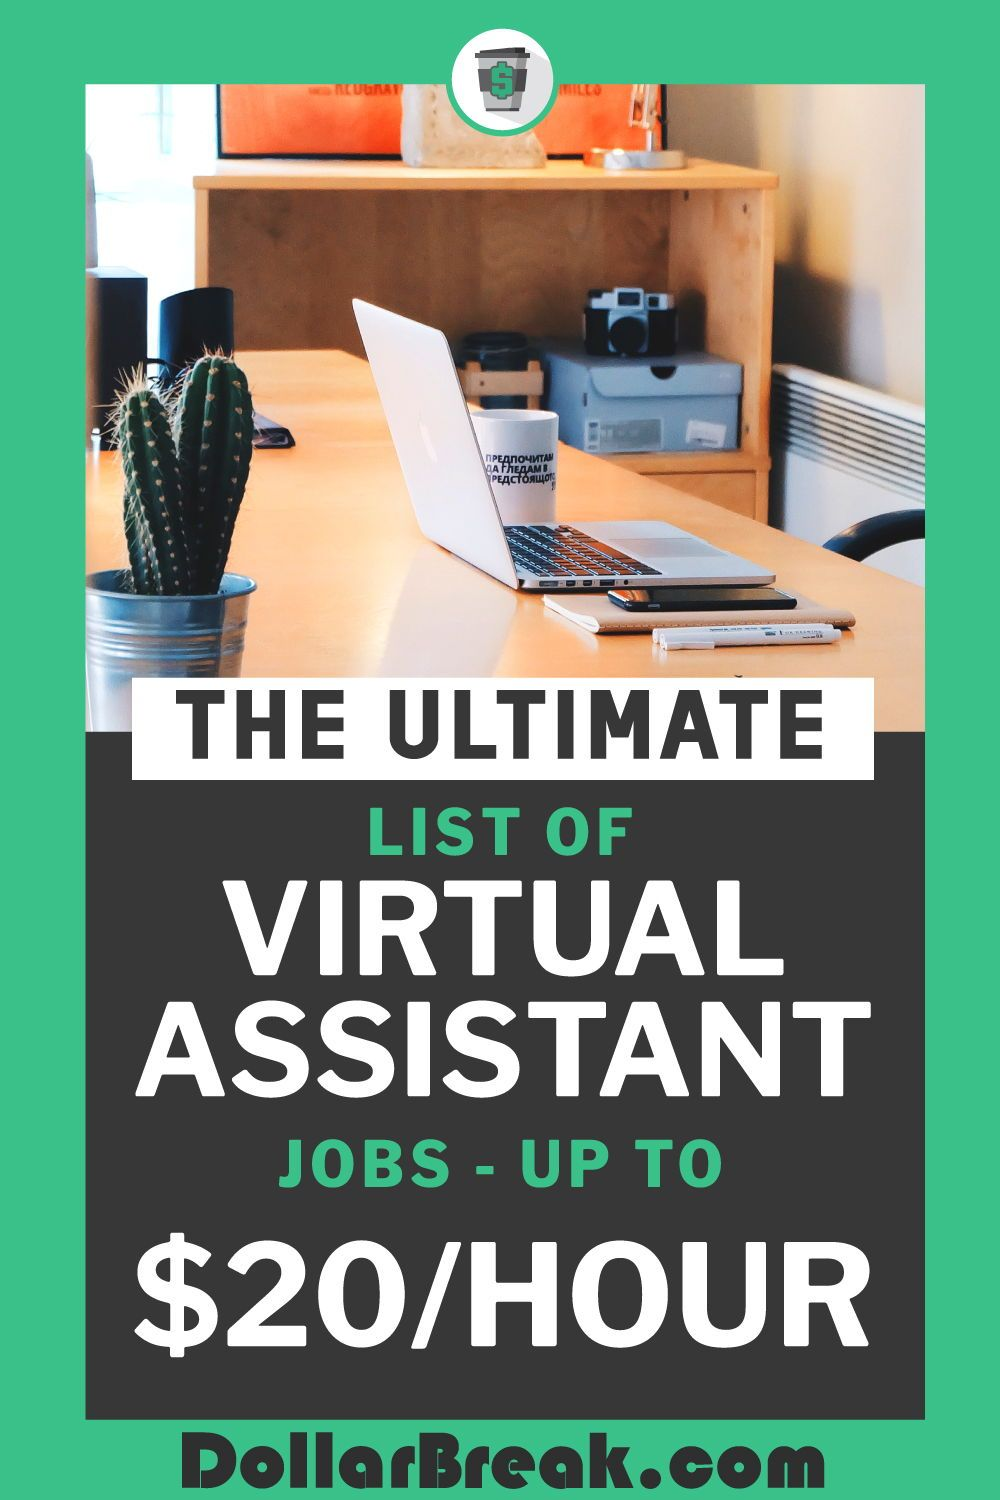 56 virtual assistant jobs for beginners in 2020